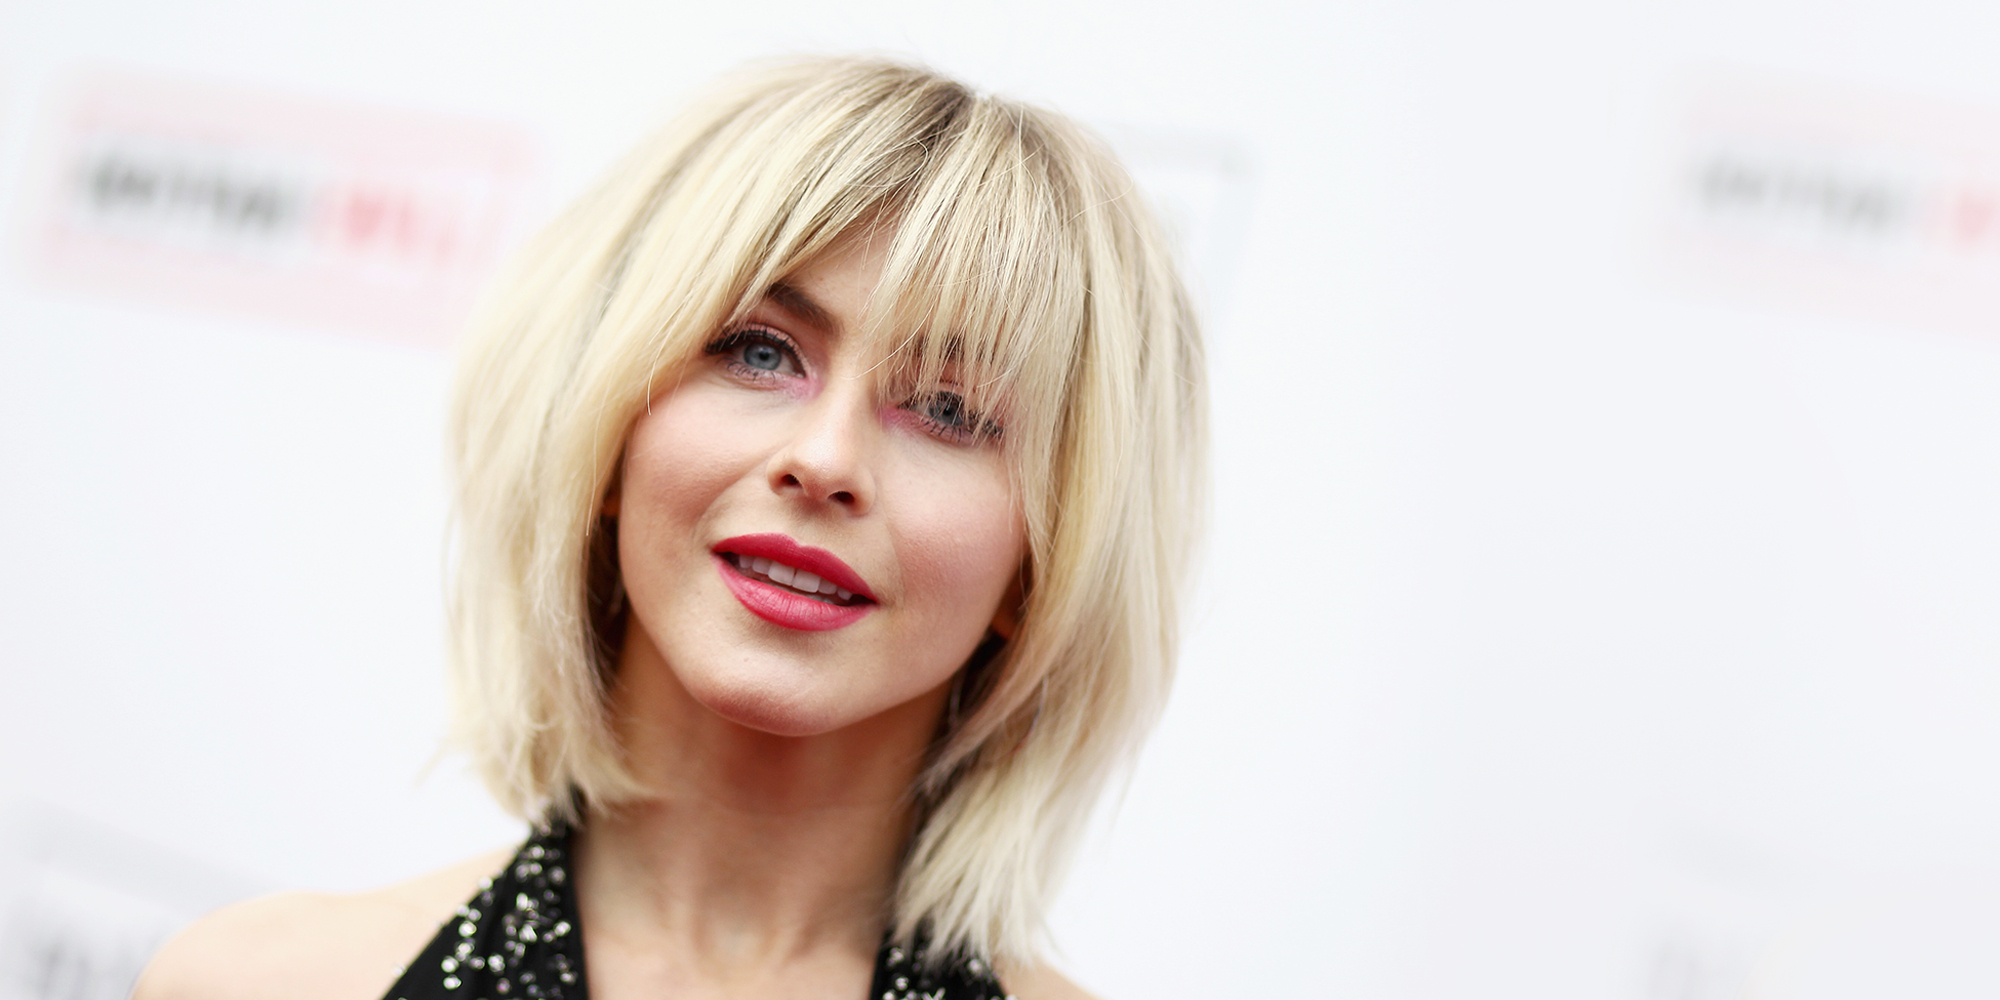 40 Best Hairstyles With Bangs – Photos Of Celebrity Haircuts Inside Most Recent Classy Feathered Bangs Hairstyles (View 10 of 20)